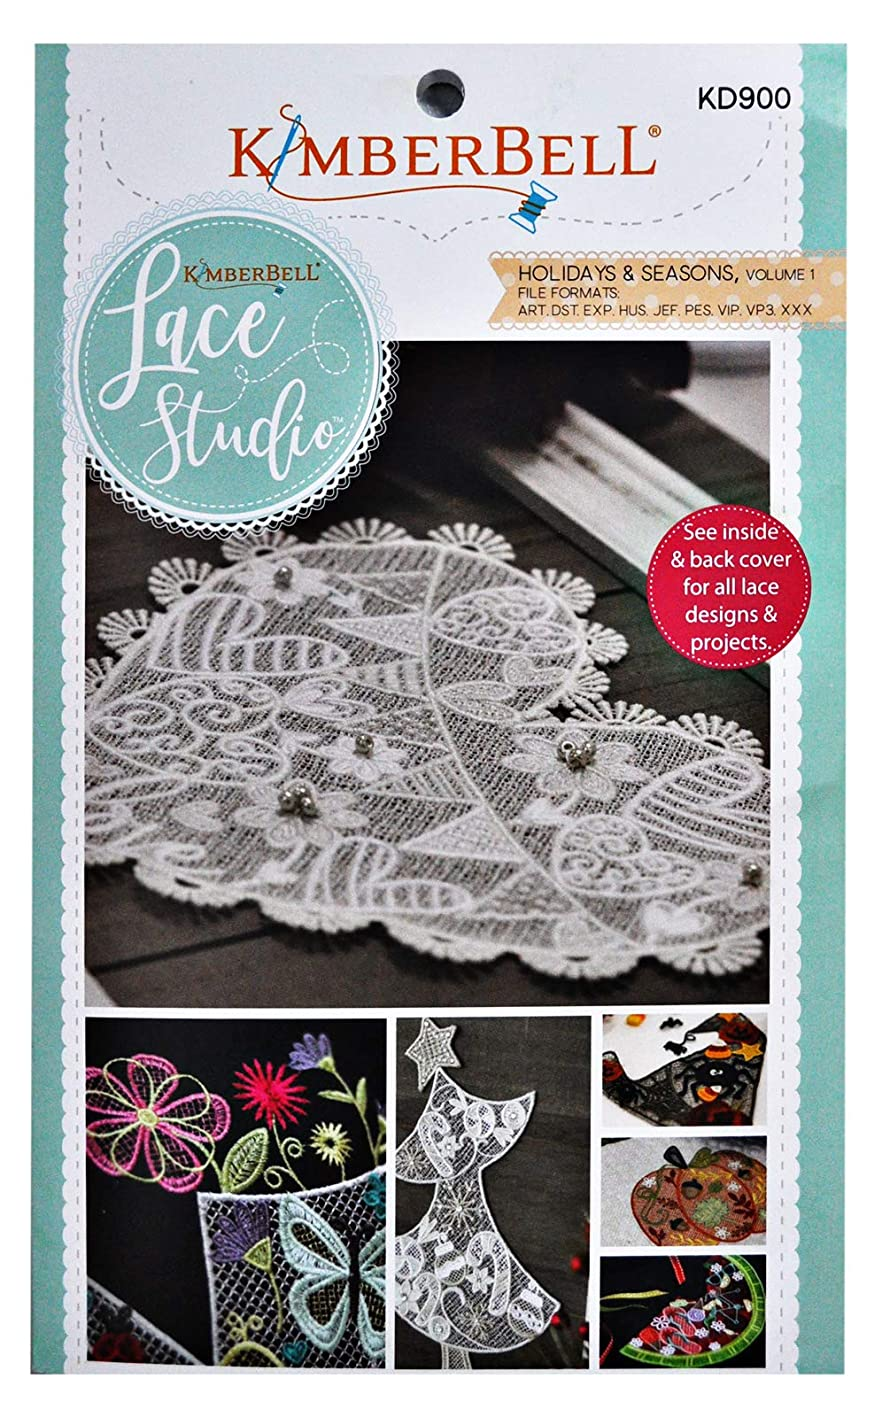 Kimberbell LACE Studio by Kimberbell Designs dhdbkdhxjed642